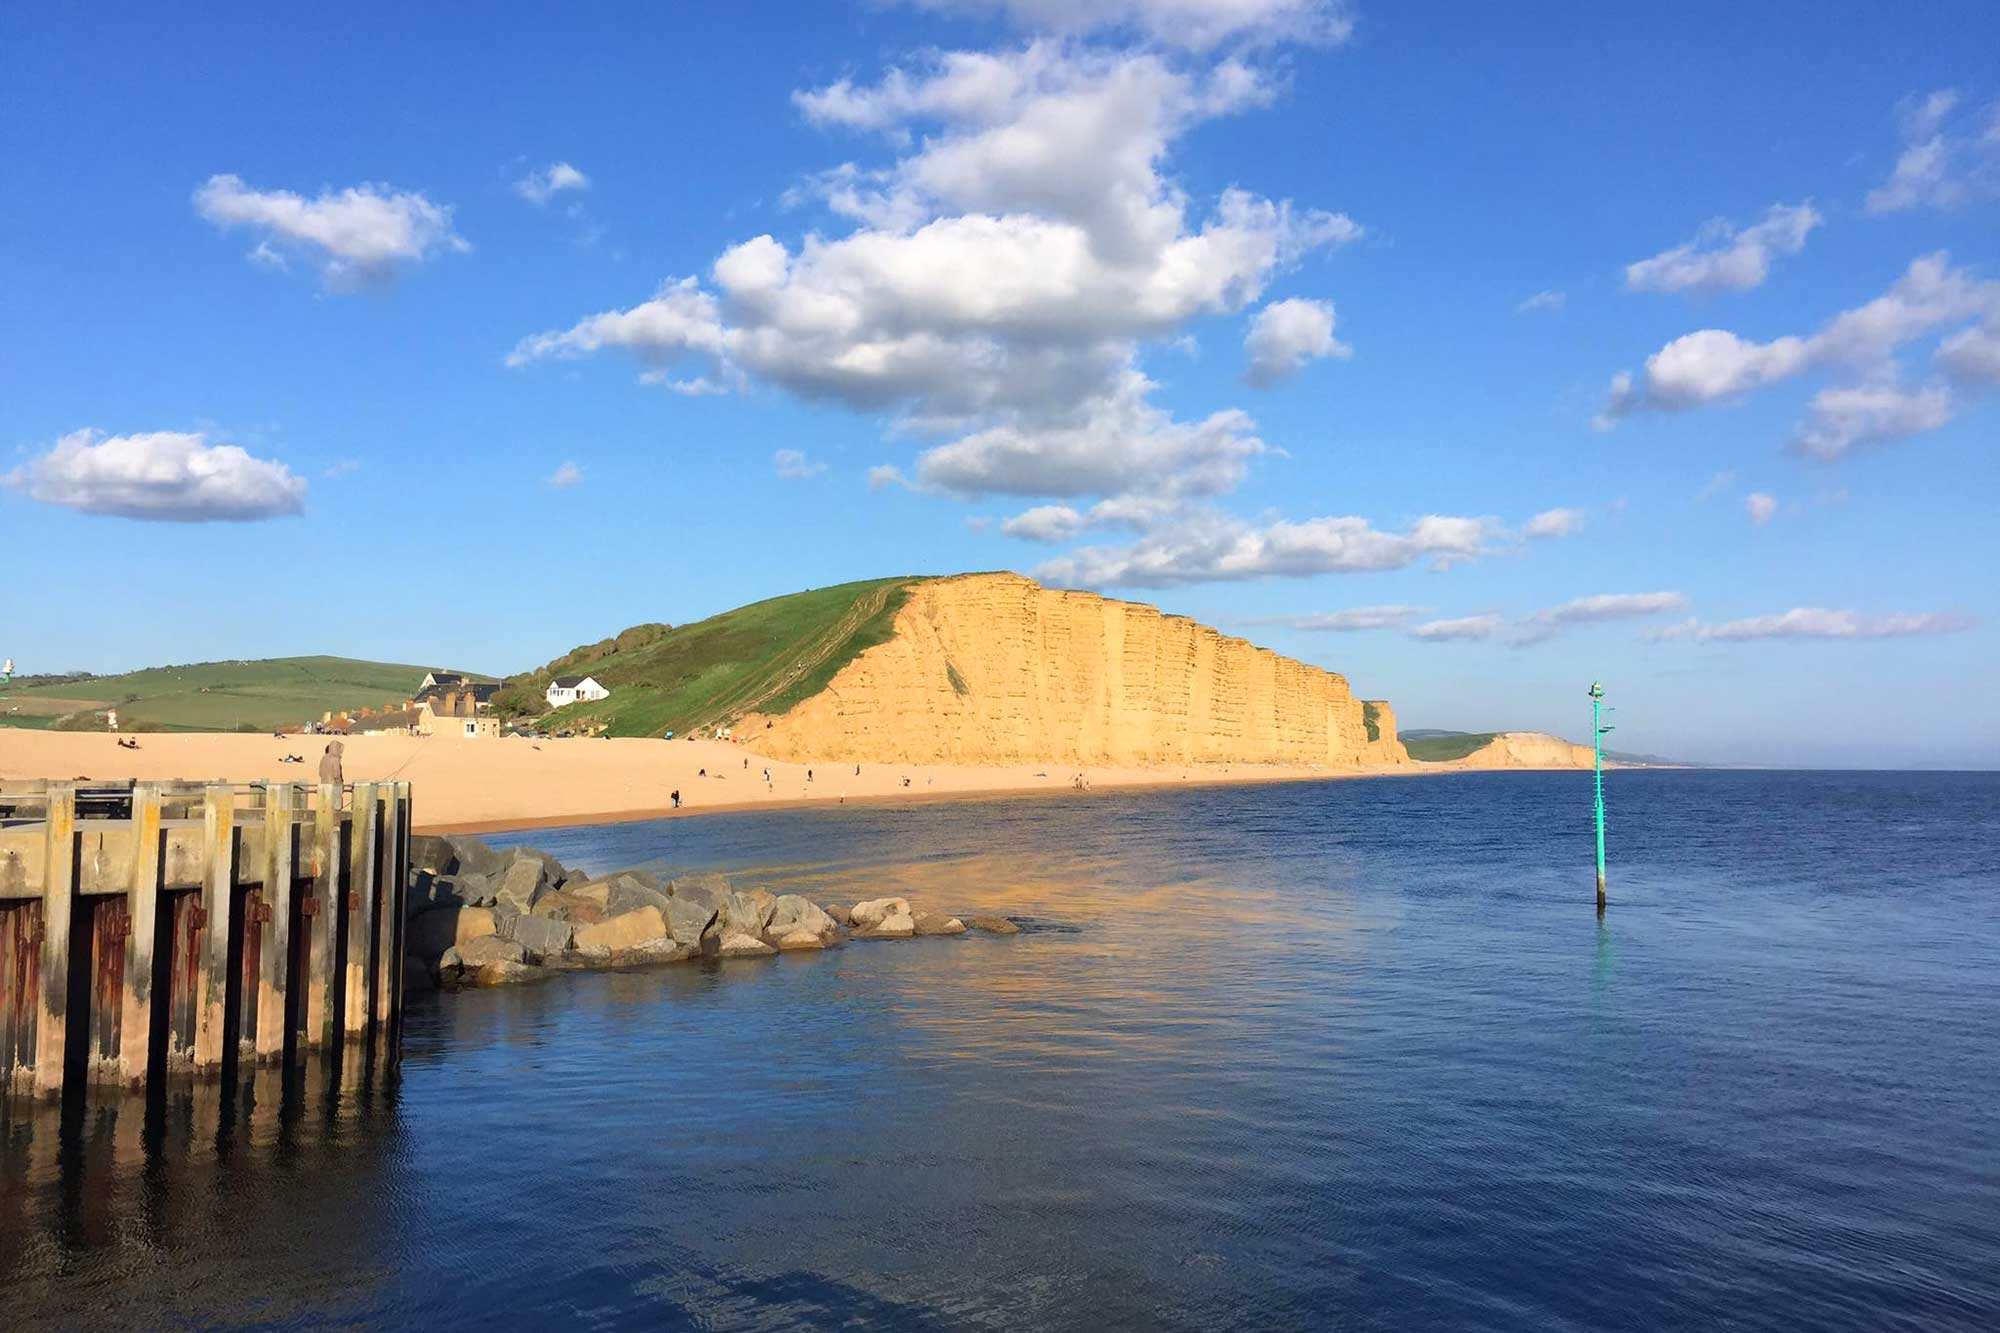 East Cliff, West Bay, Is The Famous Cliff In The Drama Series Broadchurch